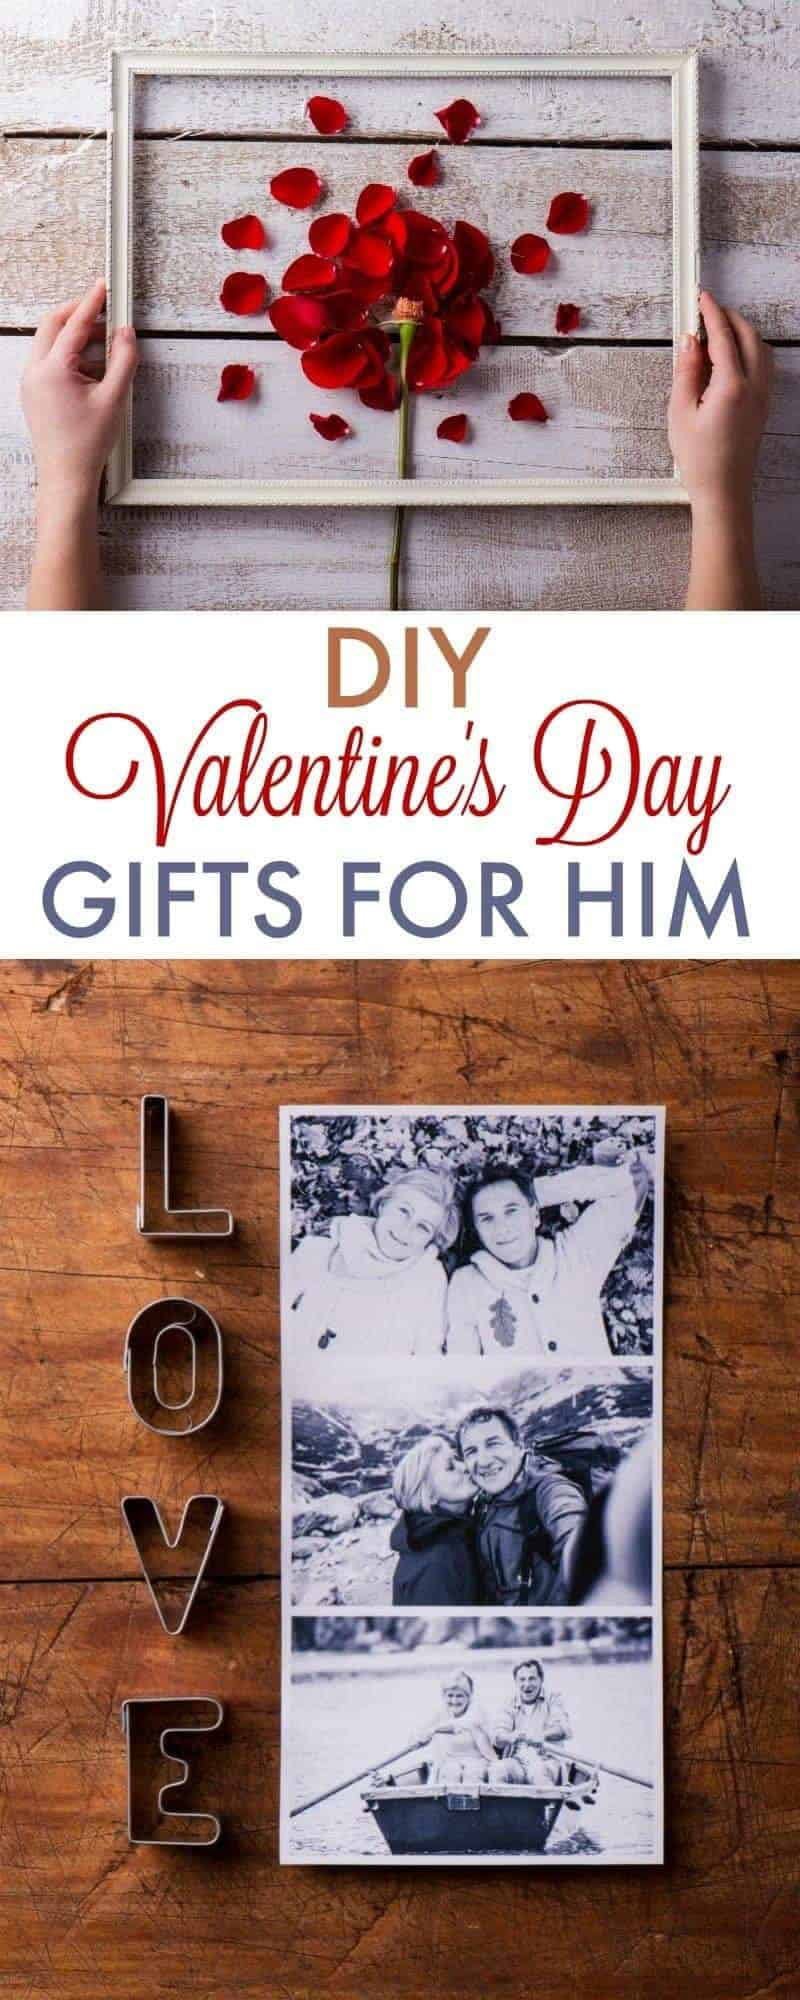 Diy Valentine S Day Gifts For Boyfriend 730 Sage Street